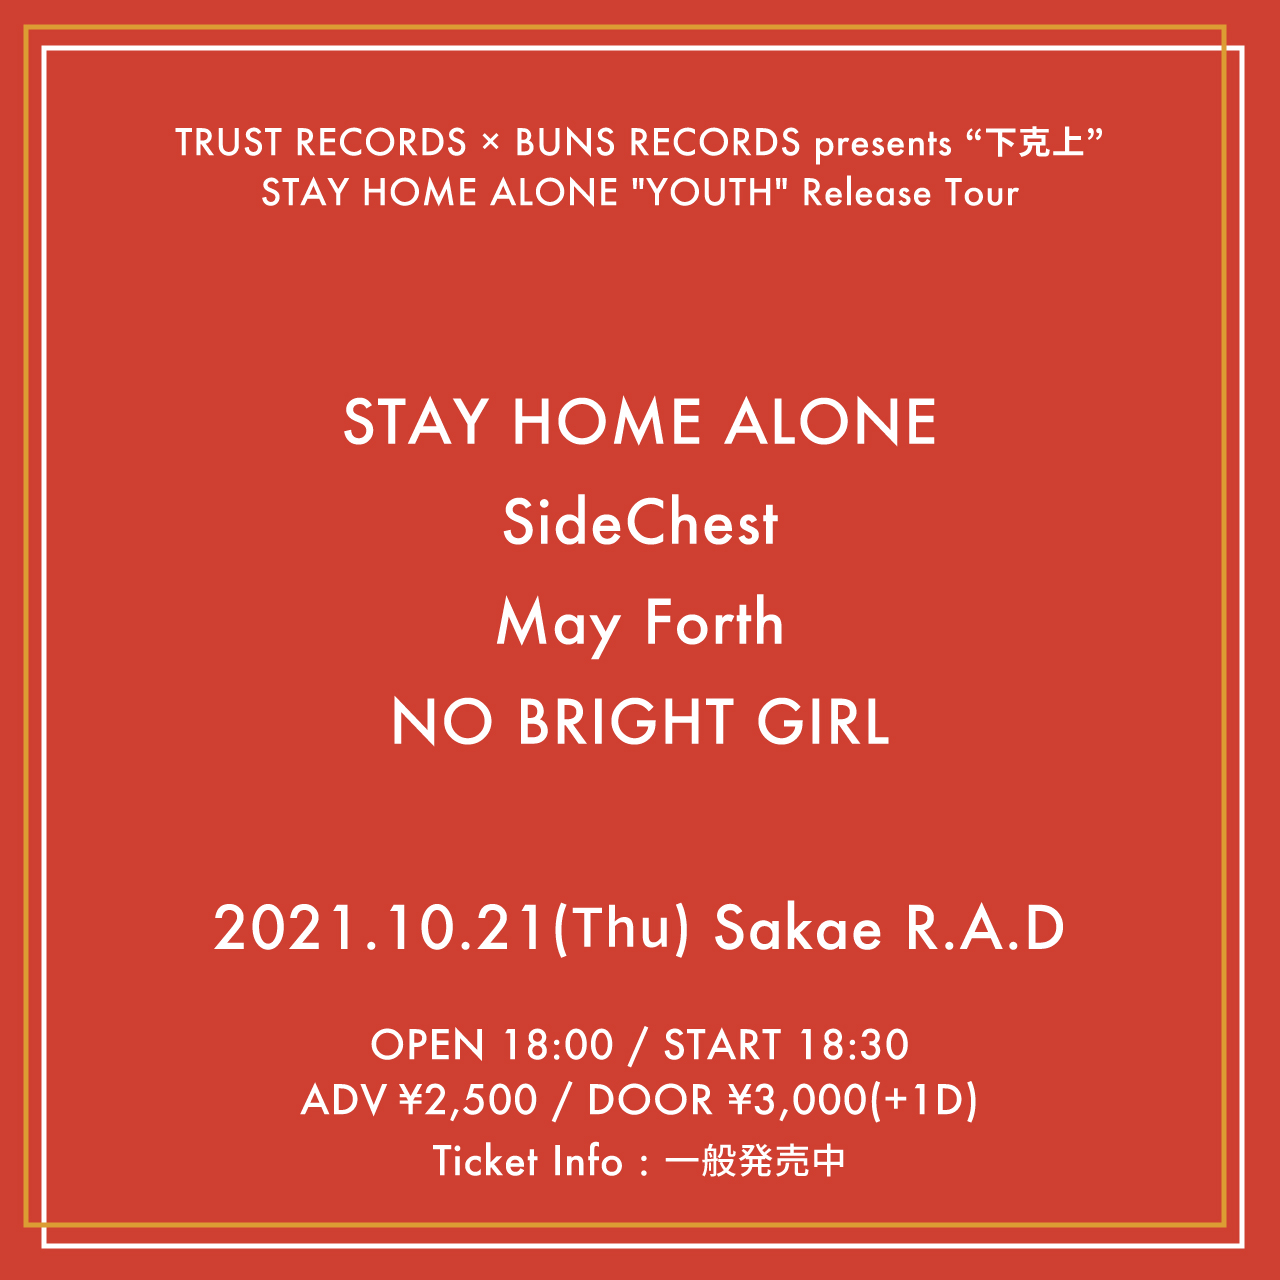 """TRUST RECORDS × BUNS RECORDS presents """"下克上"""" STAY HOME ALONE """"YOUTH"""" Release Tour"""